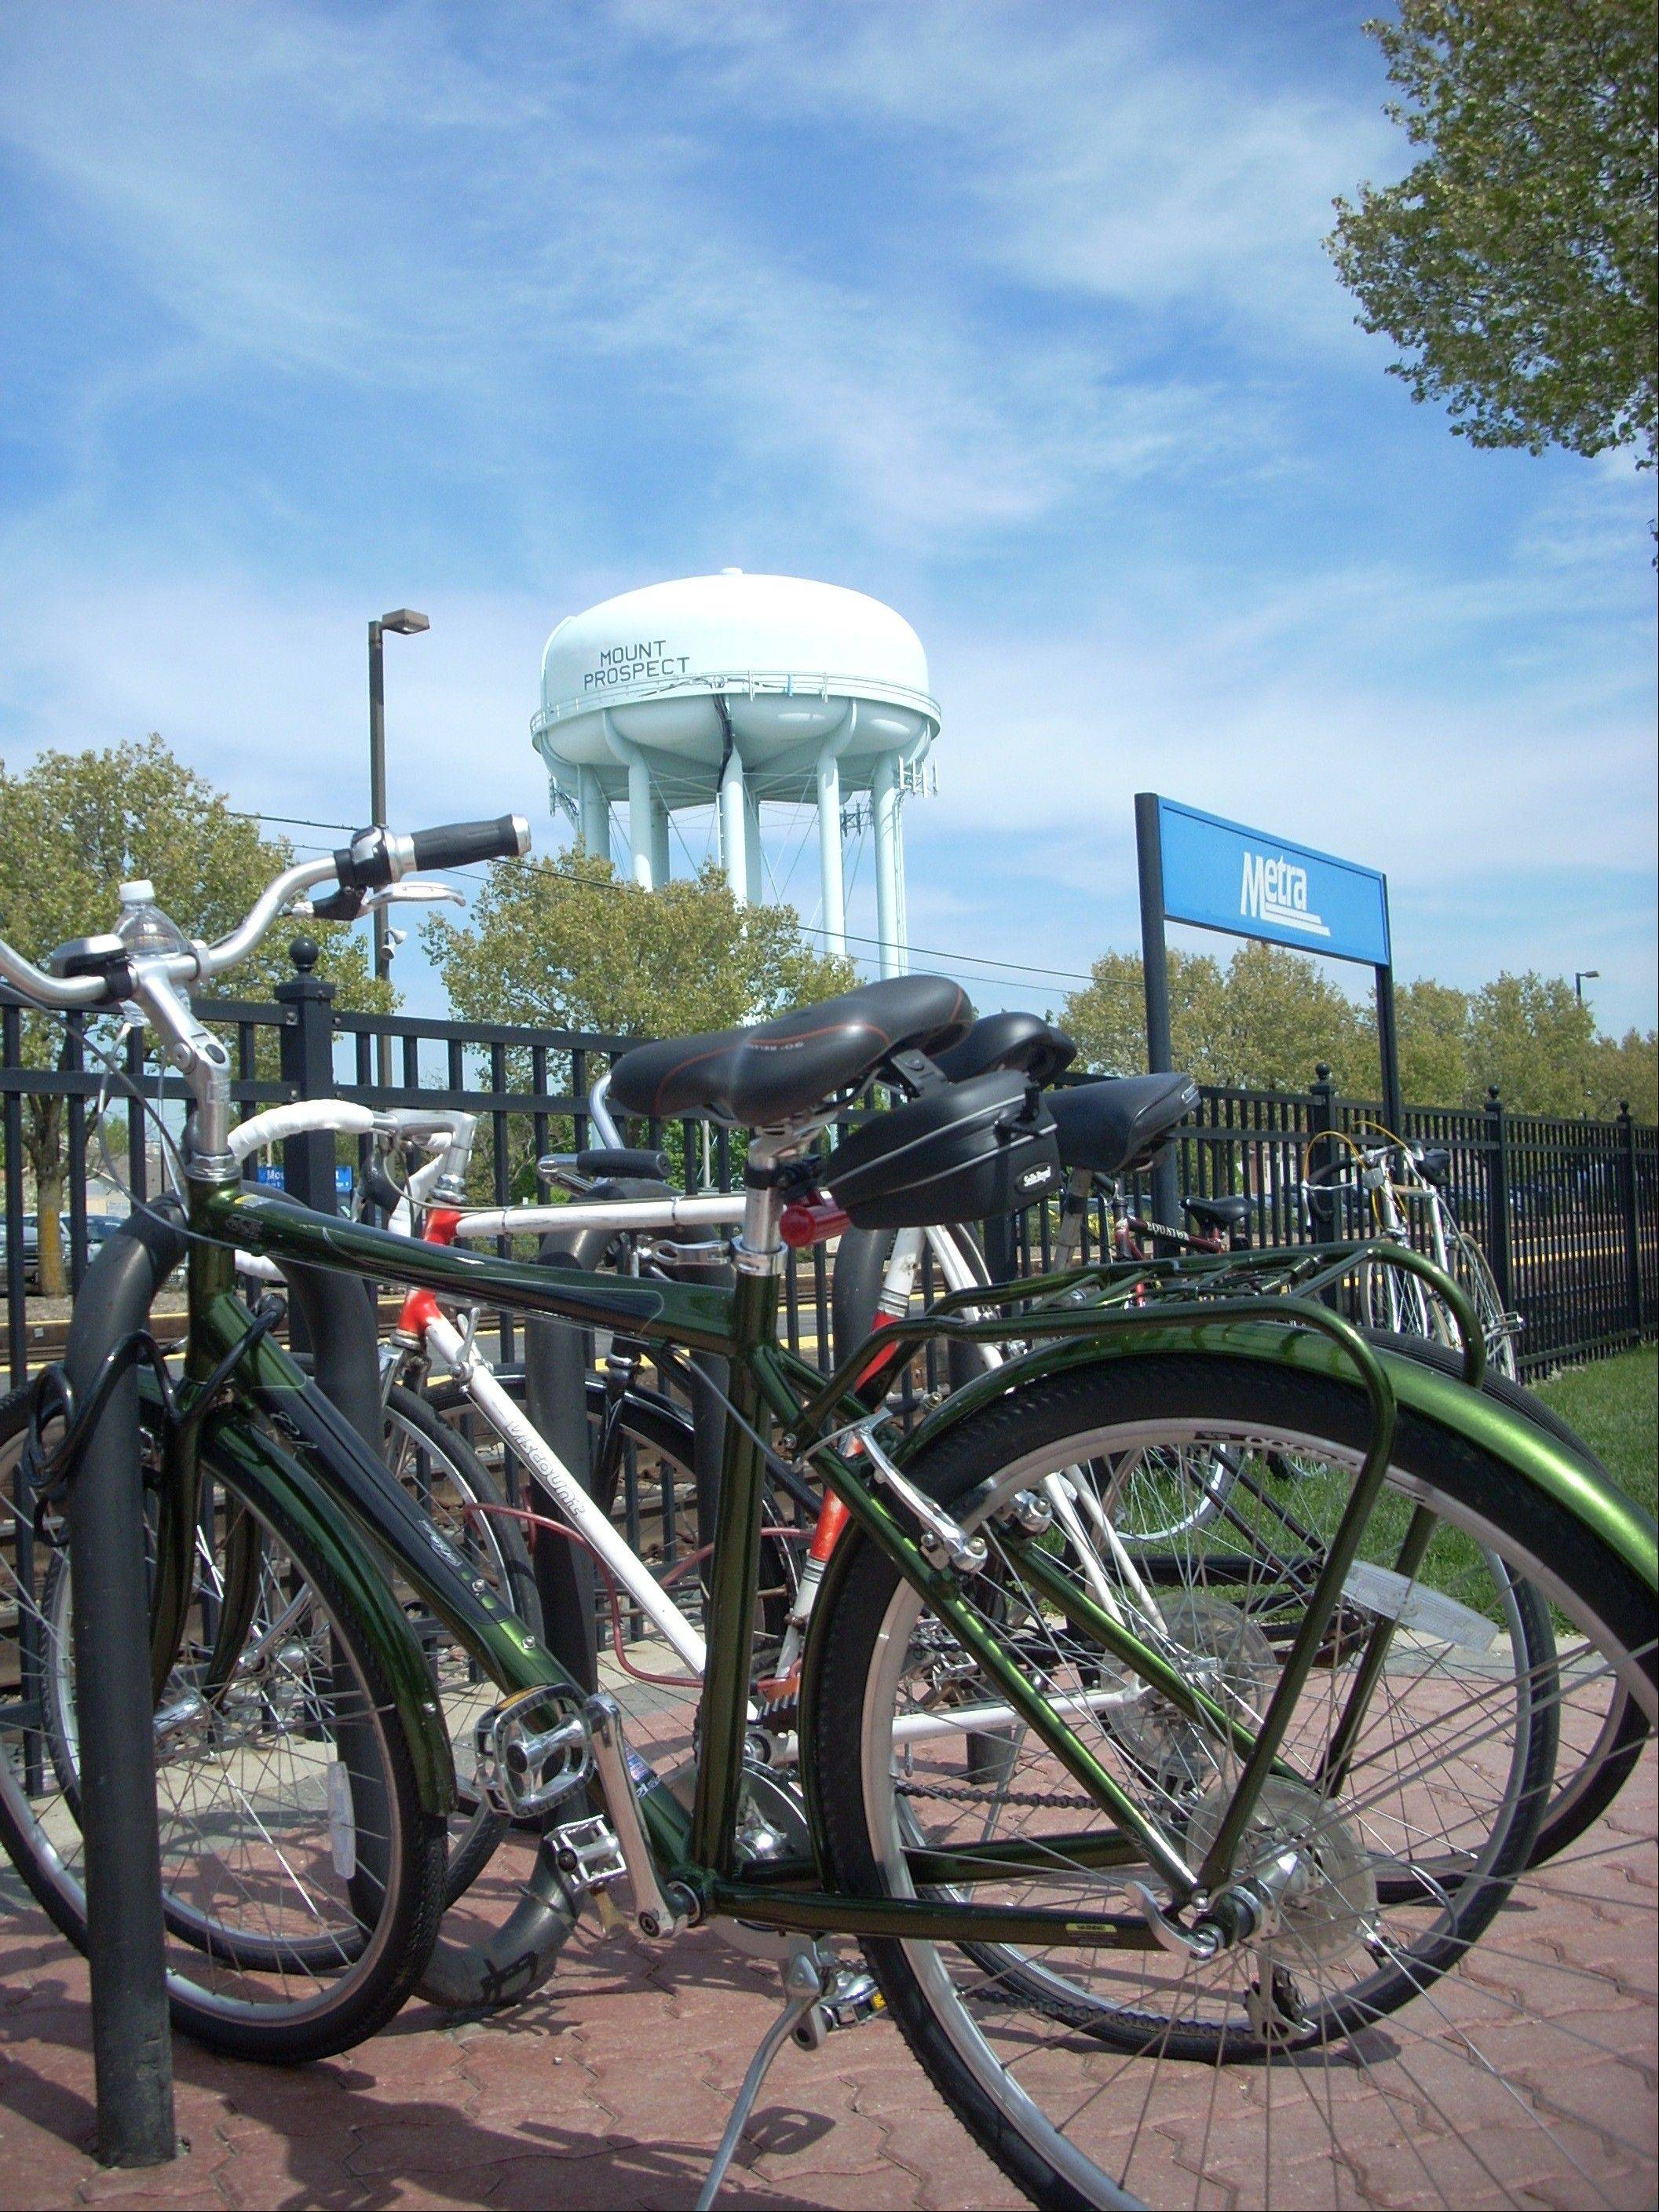 Mount Prospect leaders have approved a planning tool designed to encourage bicycle use in the village.